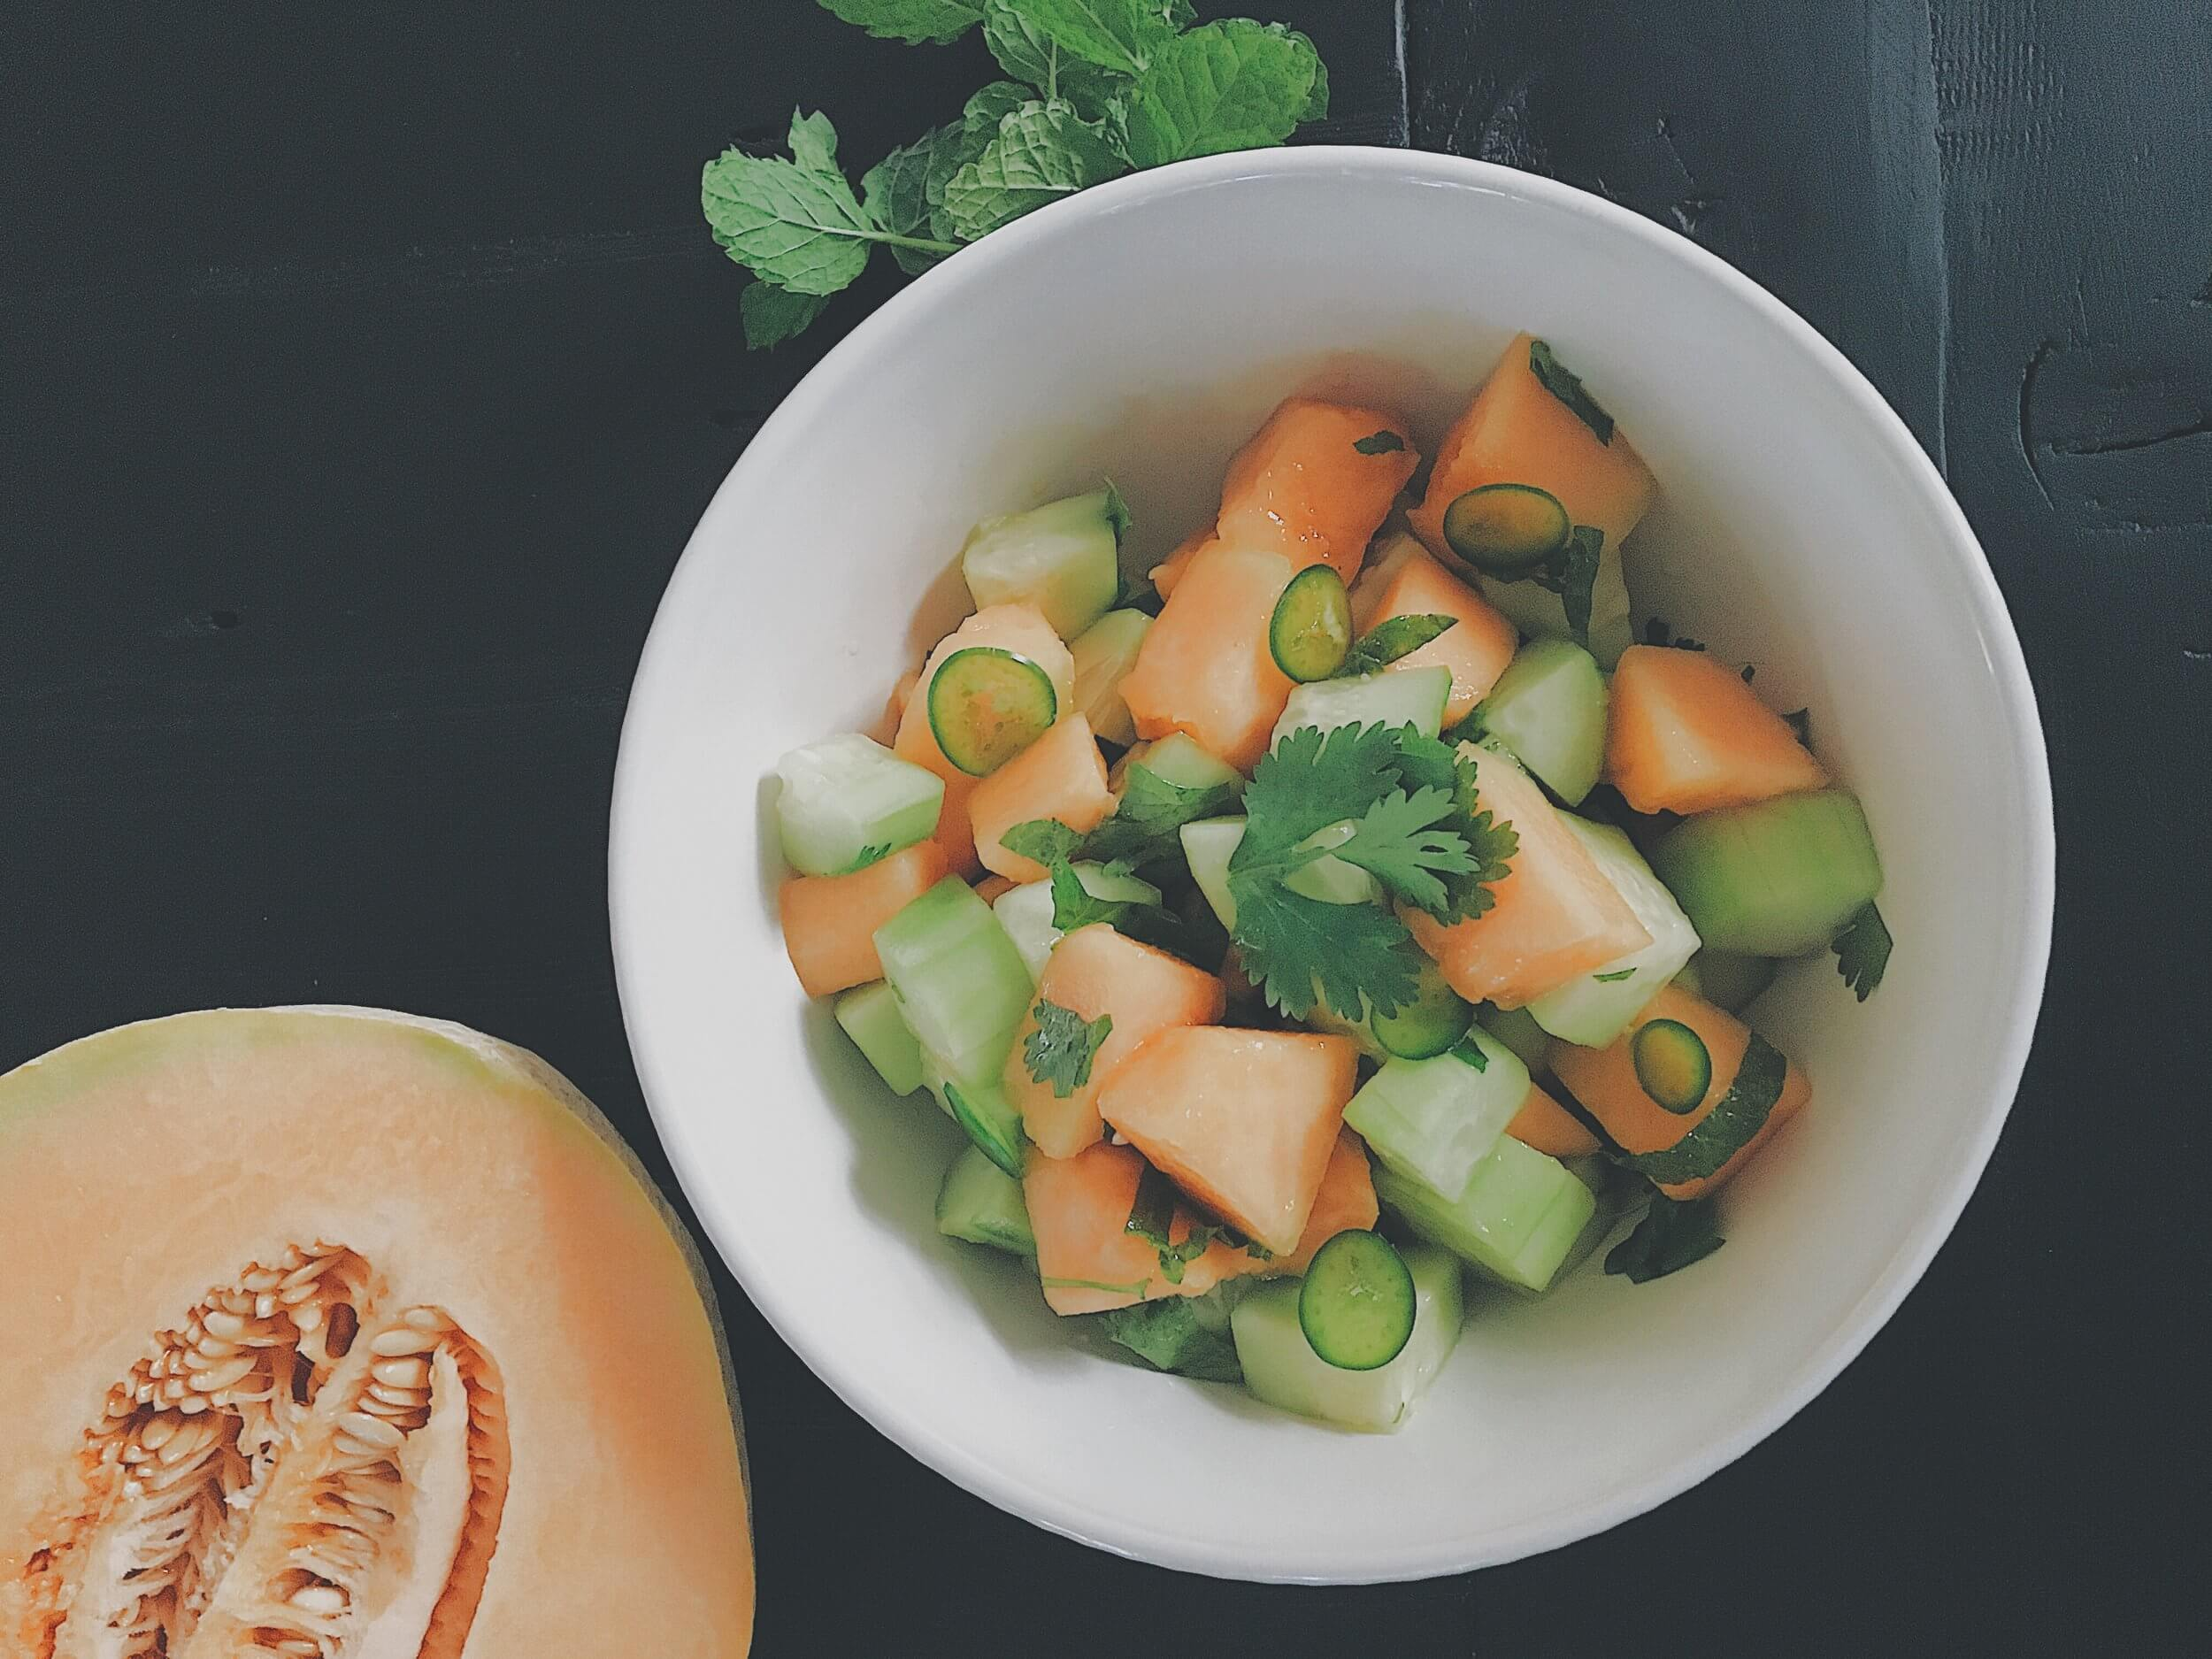 Cucumber + Melon Salad with Cilantro and Mint by Chartered Wellness